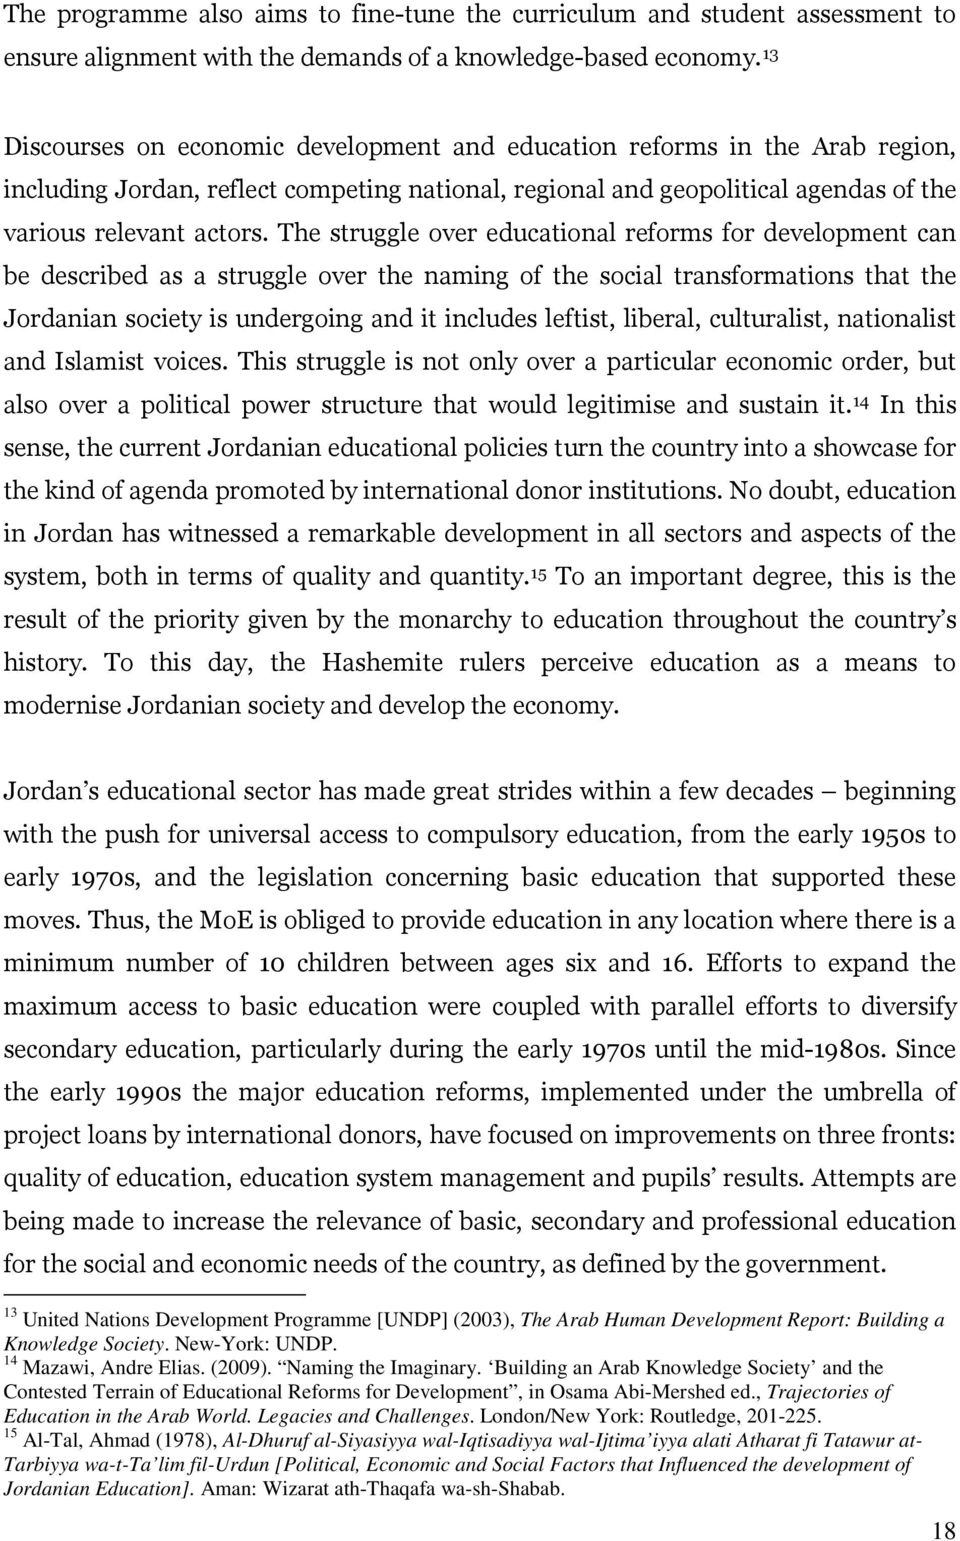 The struggle over educational reforms for development can be described as a struggle over the naming of the social transformations that the Jordanian society is undergoing and it includes leftist,